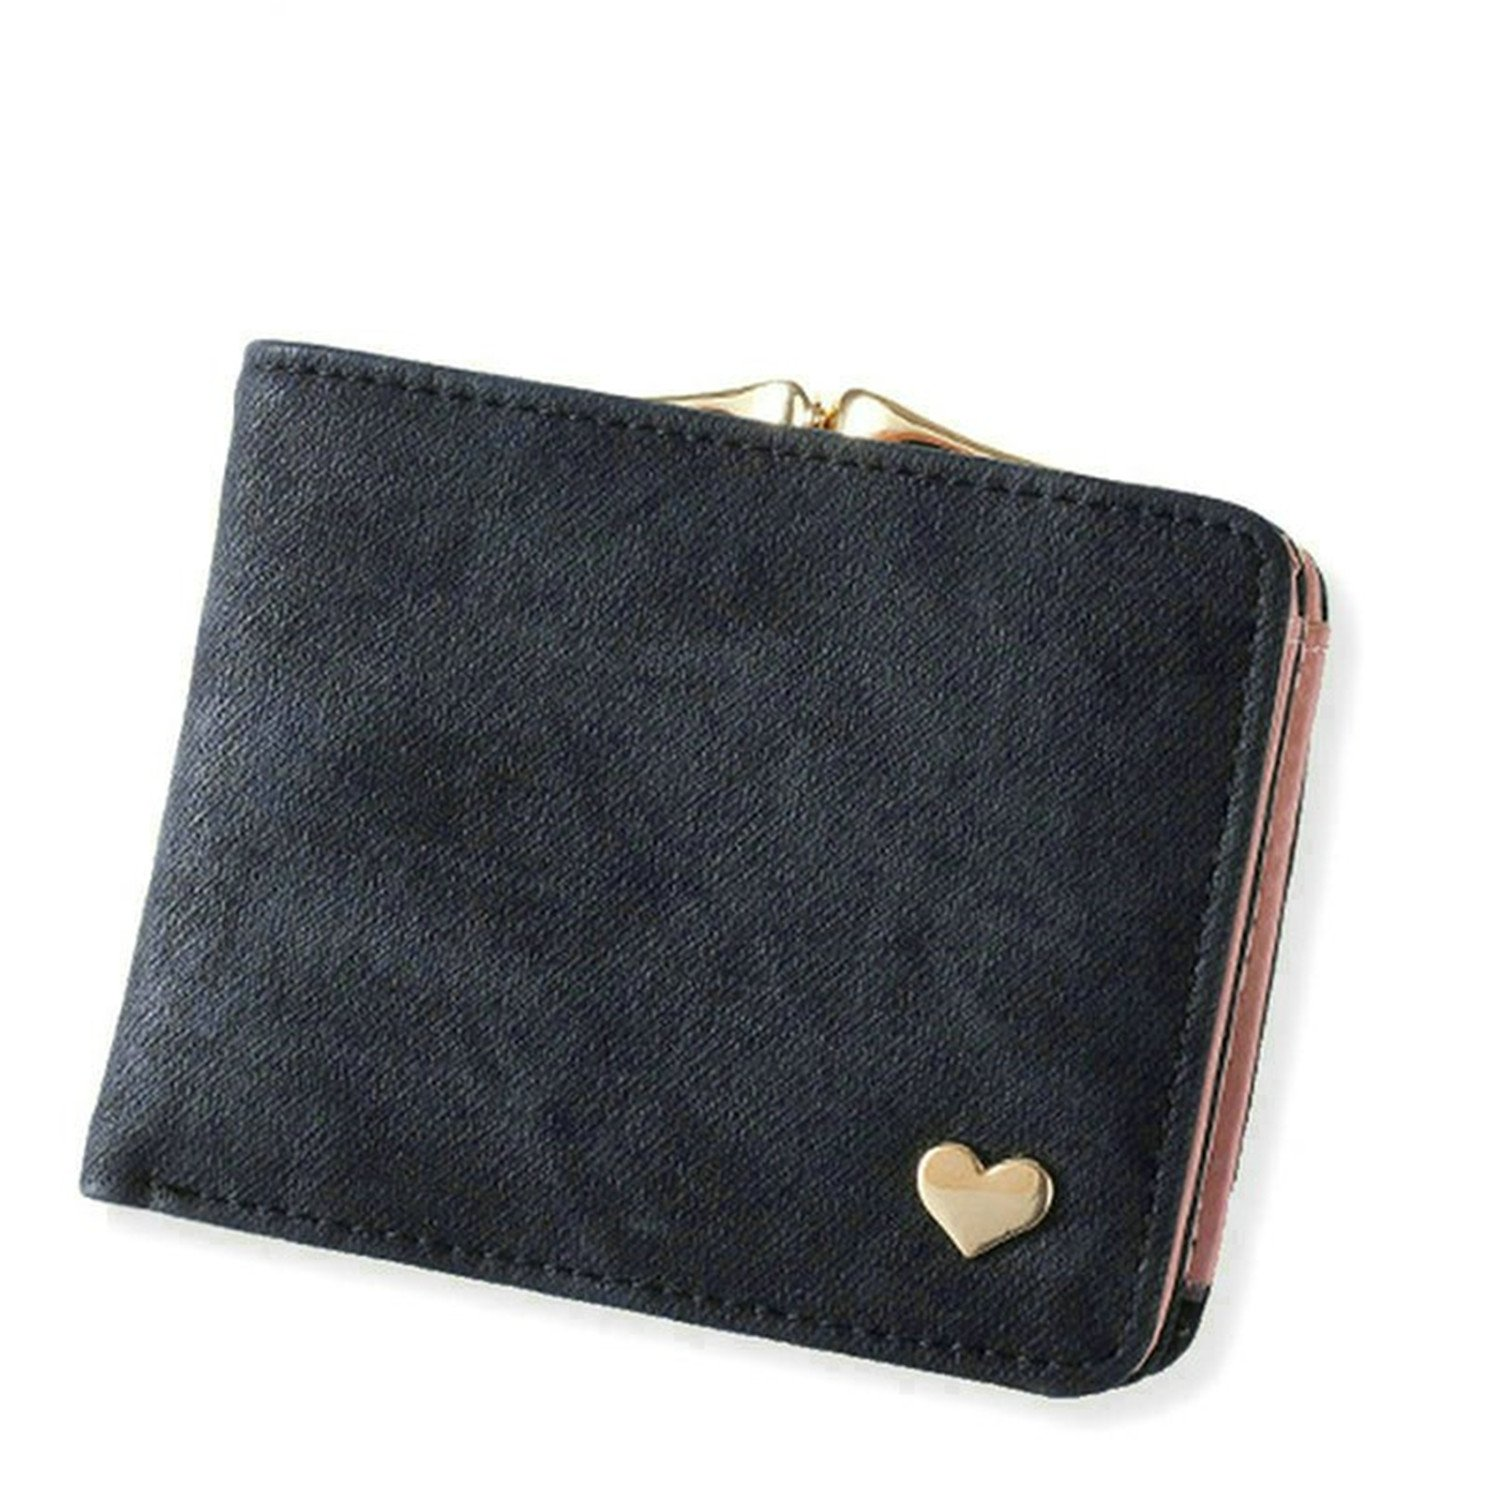 Nerefy New Woman Wallet Small Hasp Coin Purse For Women Luxury Leather Female Wallets Design Brand Mini Lady Purses Clutch Card Holder Black at Amazon ...